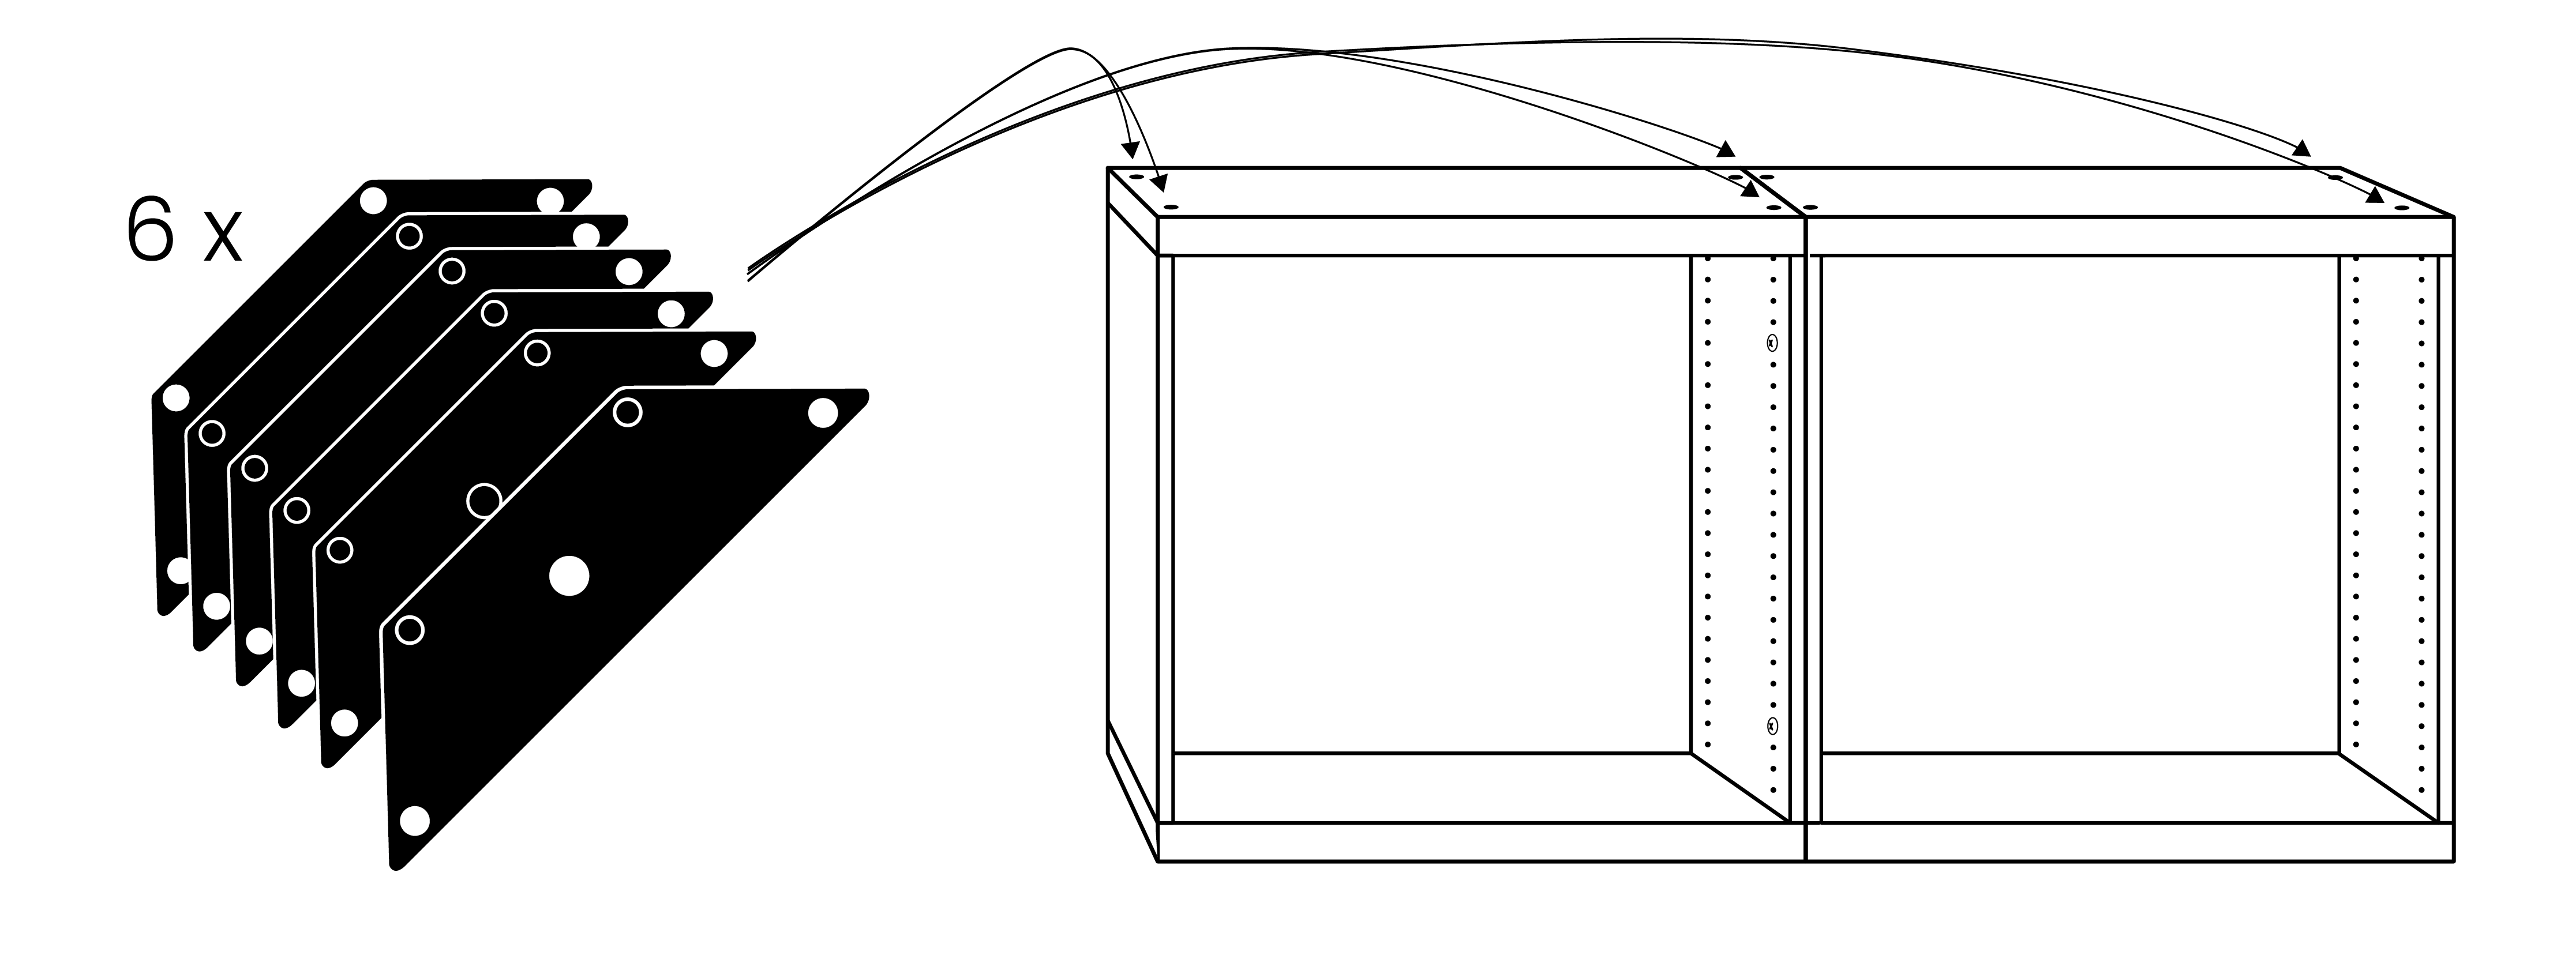 ikea besta vara instructions